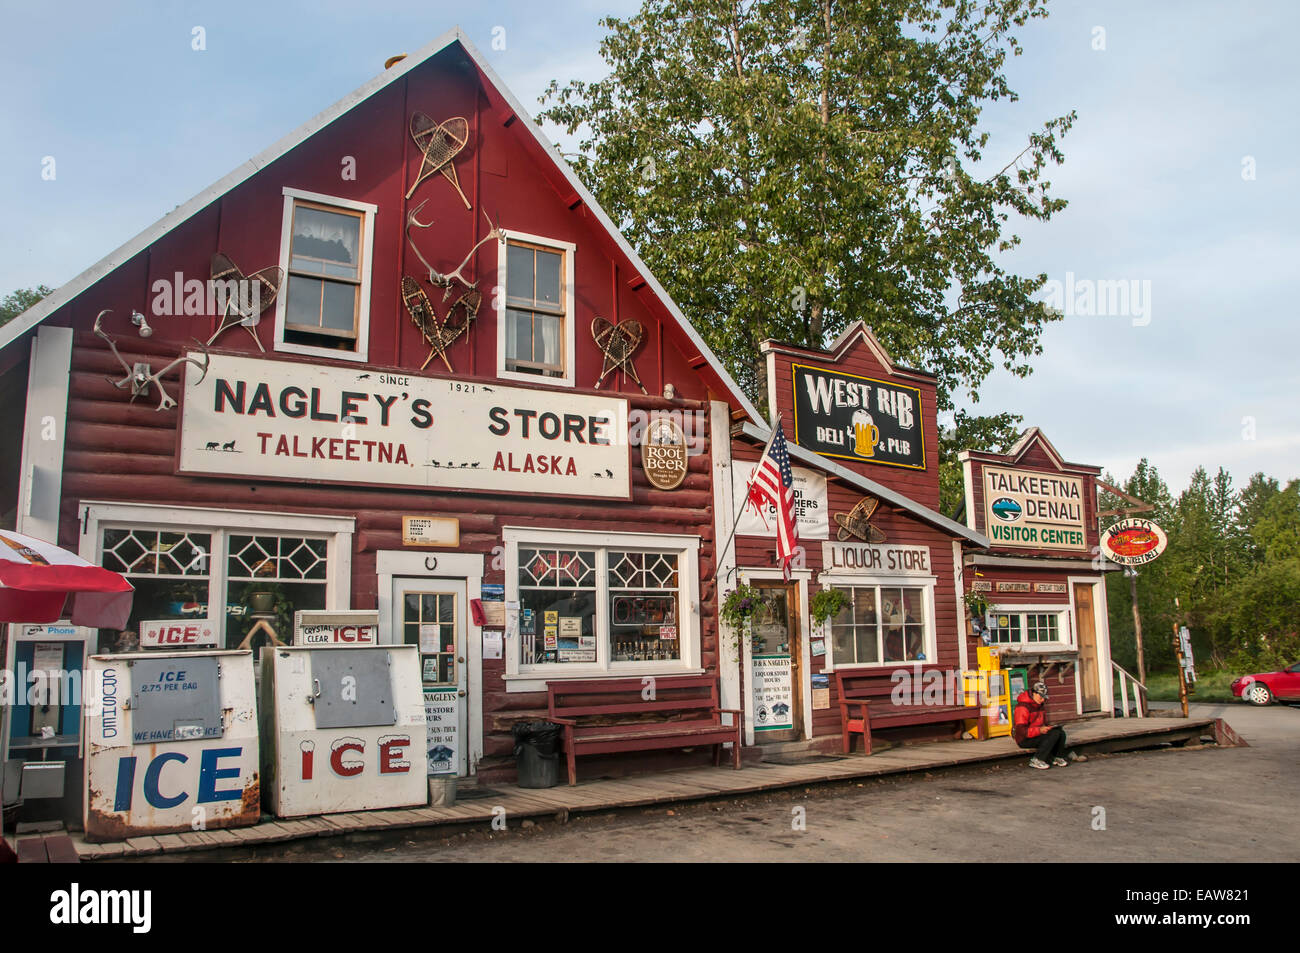 The historic Nagley's Store on main street in Talkeetna, Alaska Stock Photo